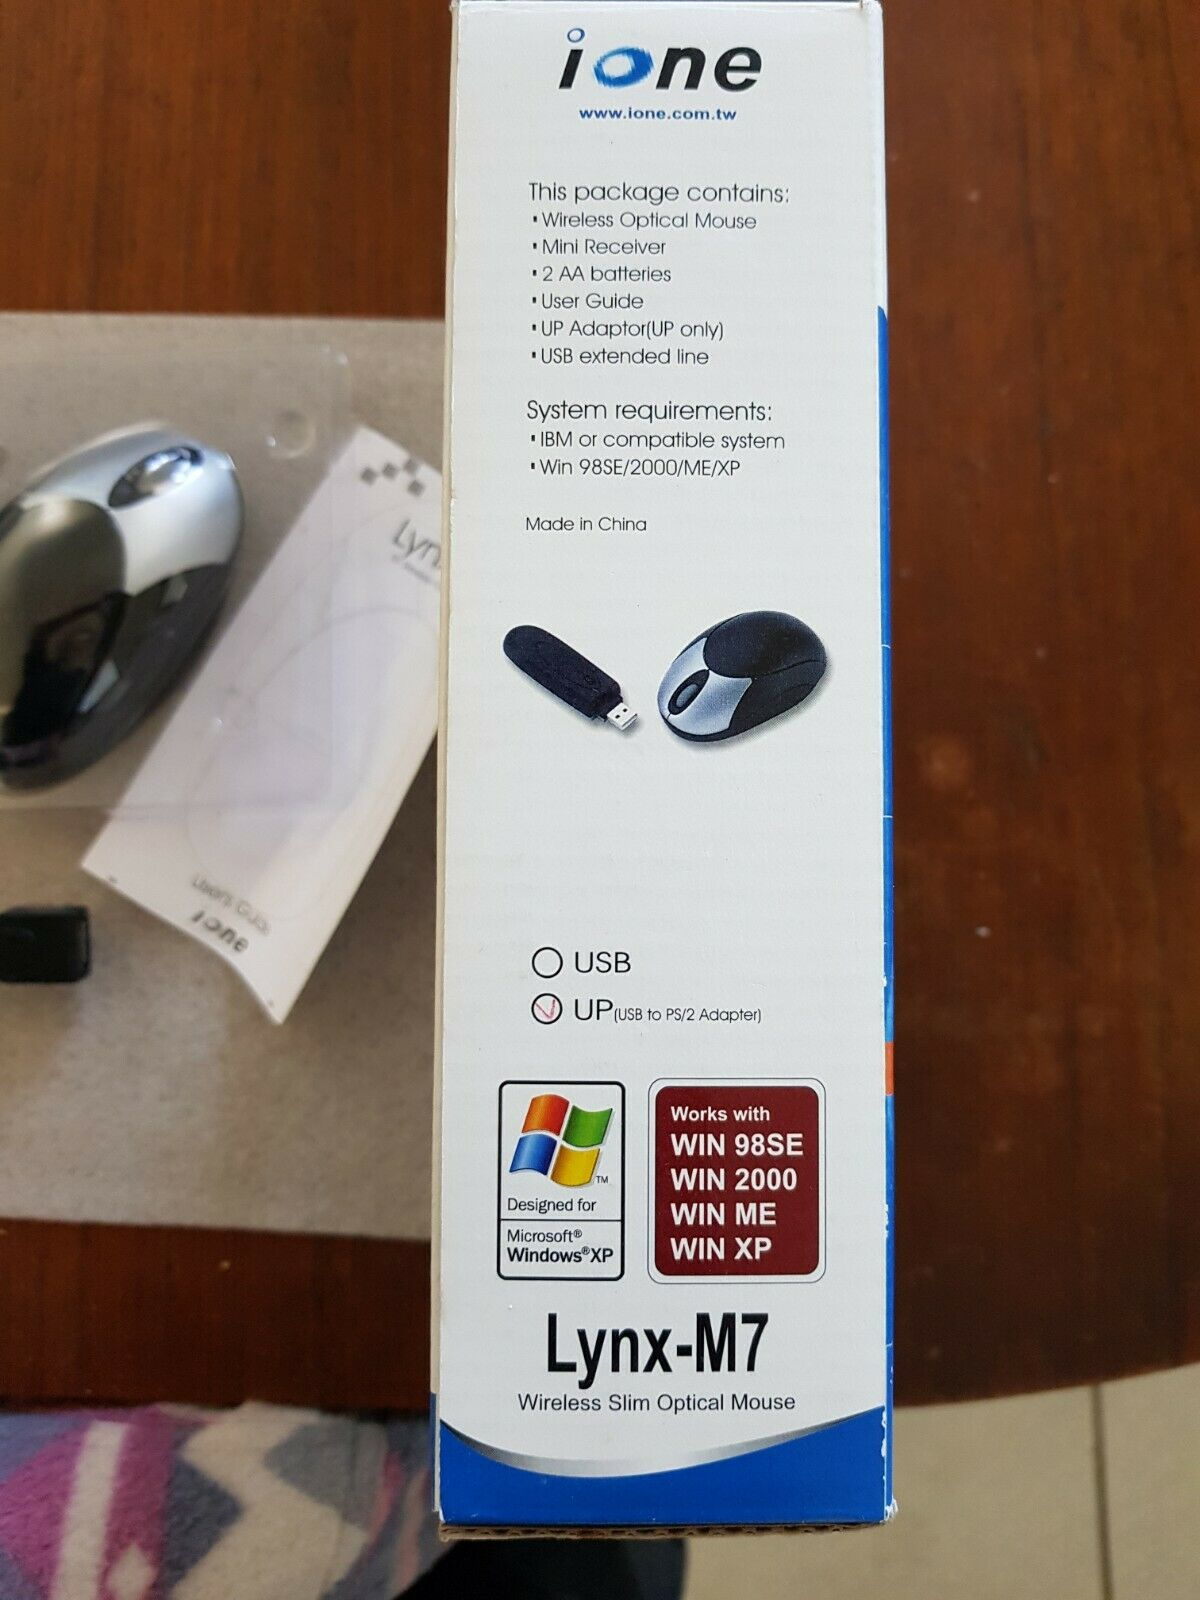 Souris ione lynx-m7 wireless slim optical mouse usb & ps/2